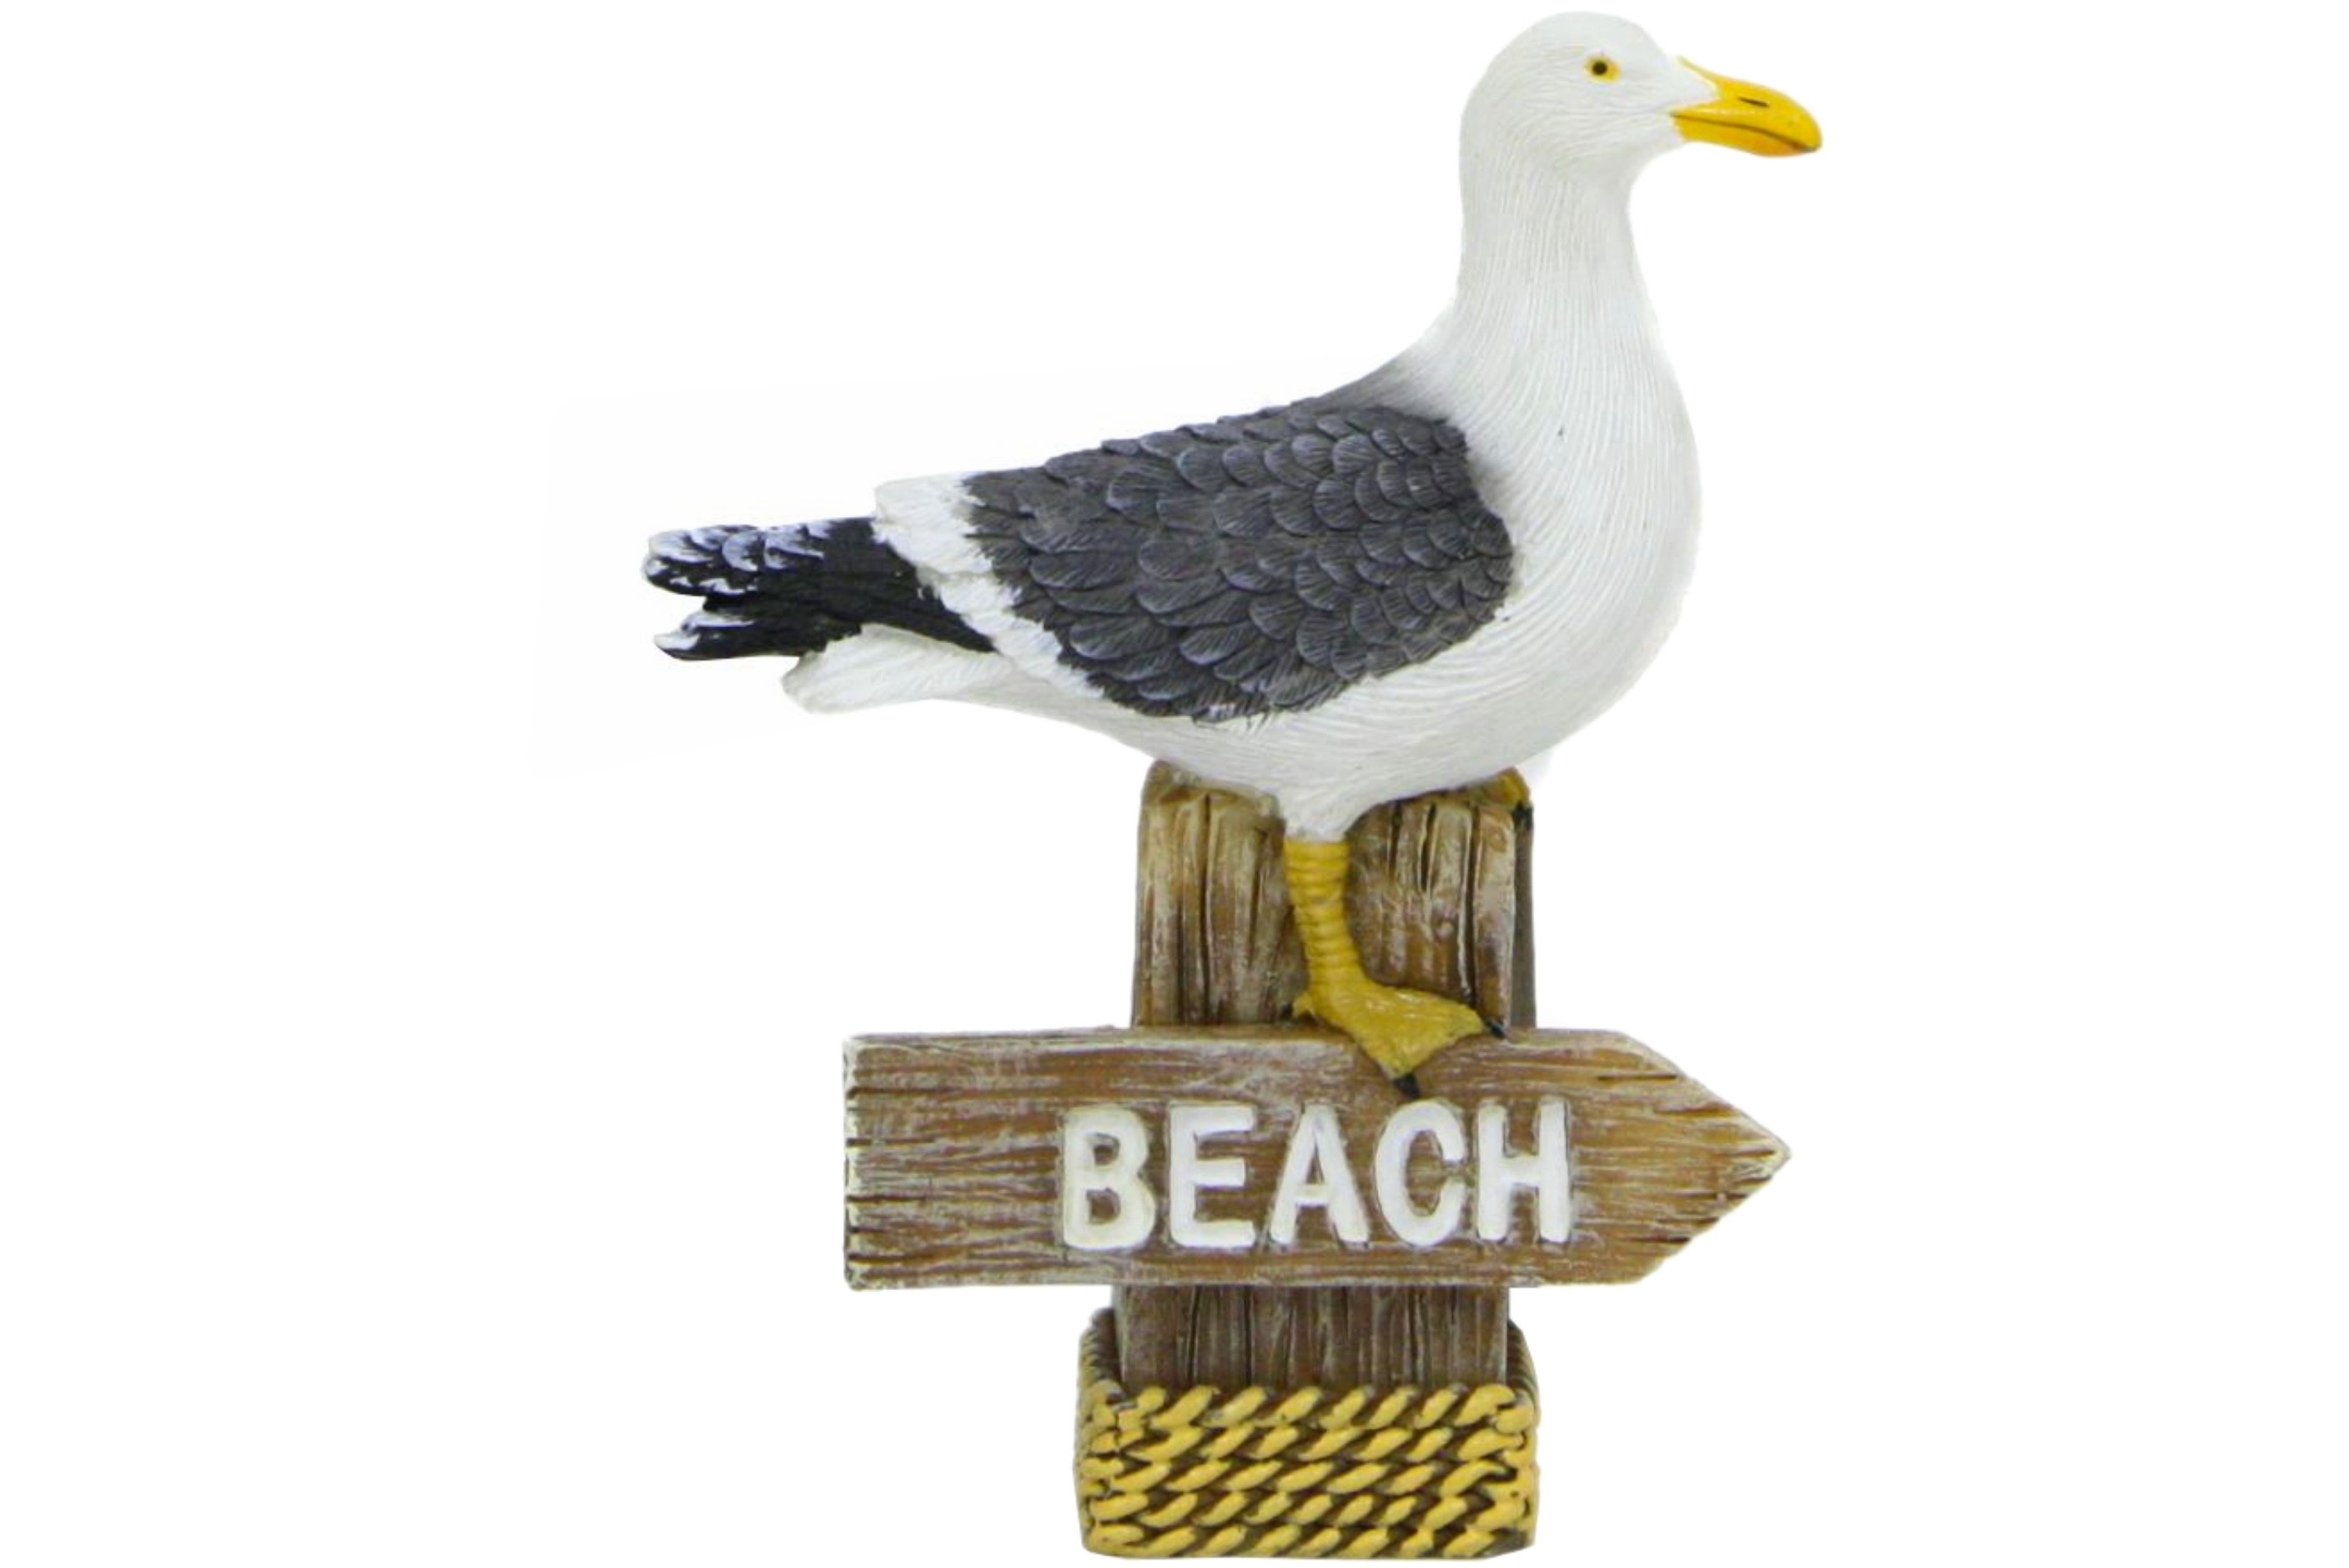 Resin Seagull On Small Beach Sign 6.5 x 2.5 x 8.5cm